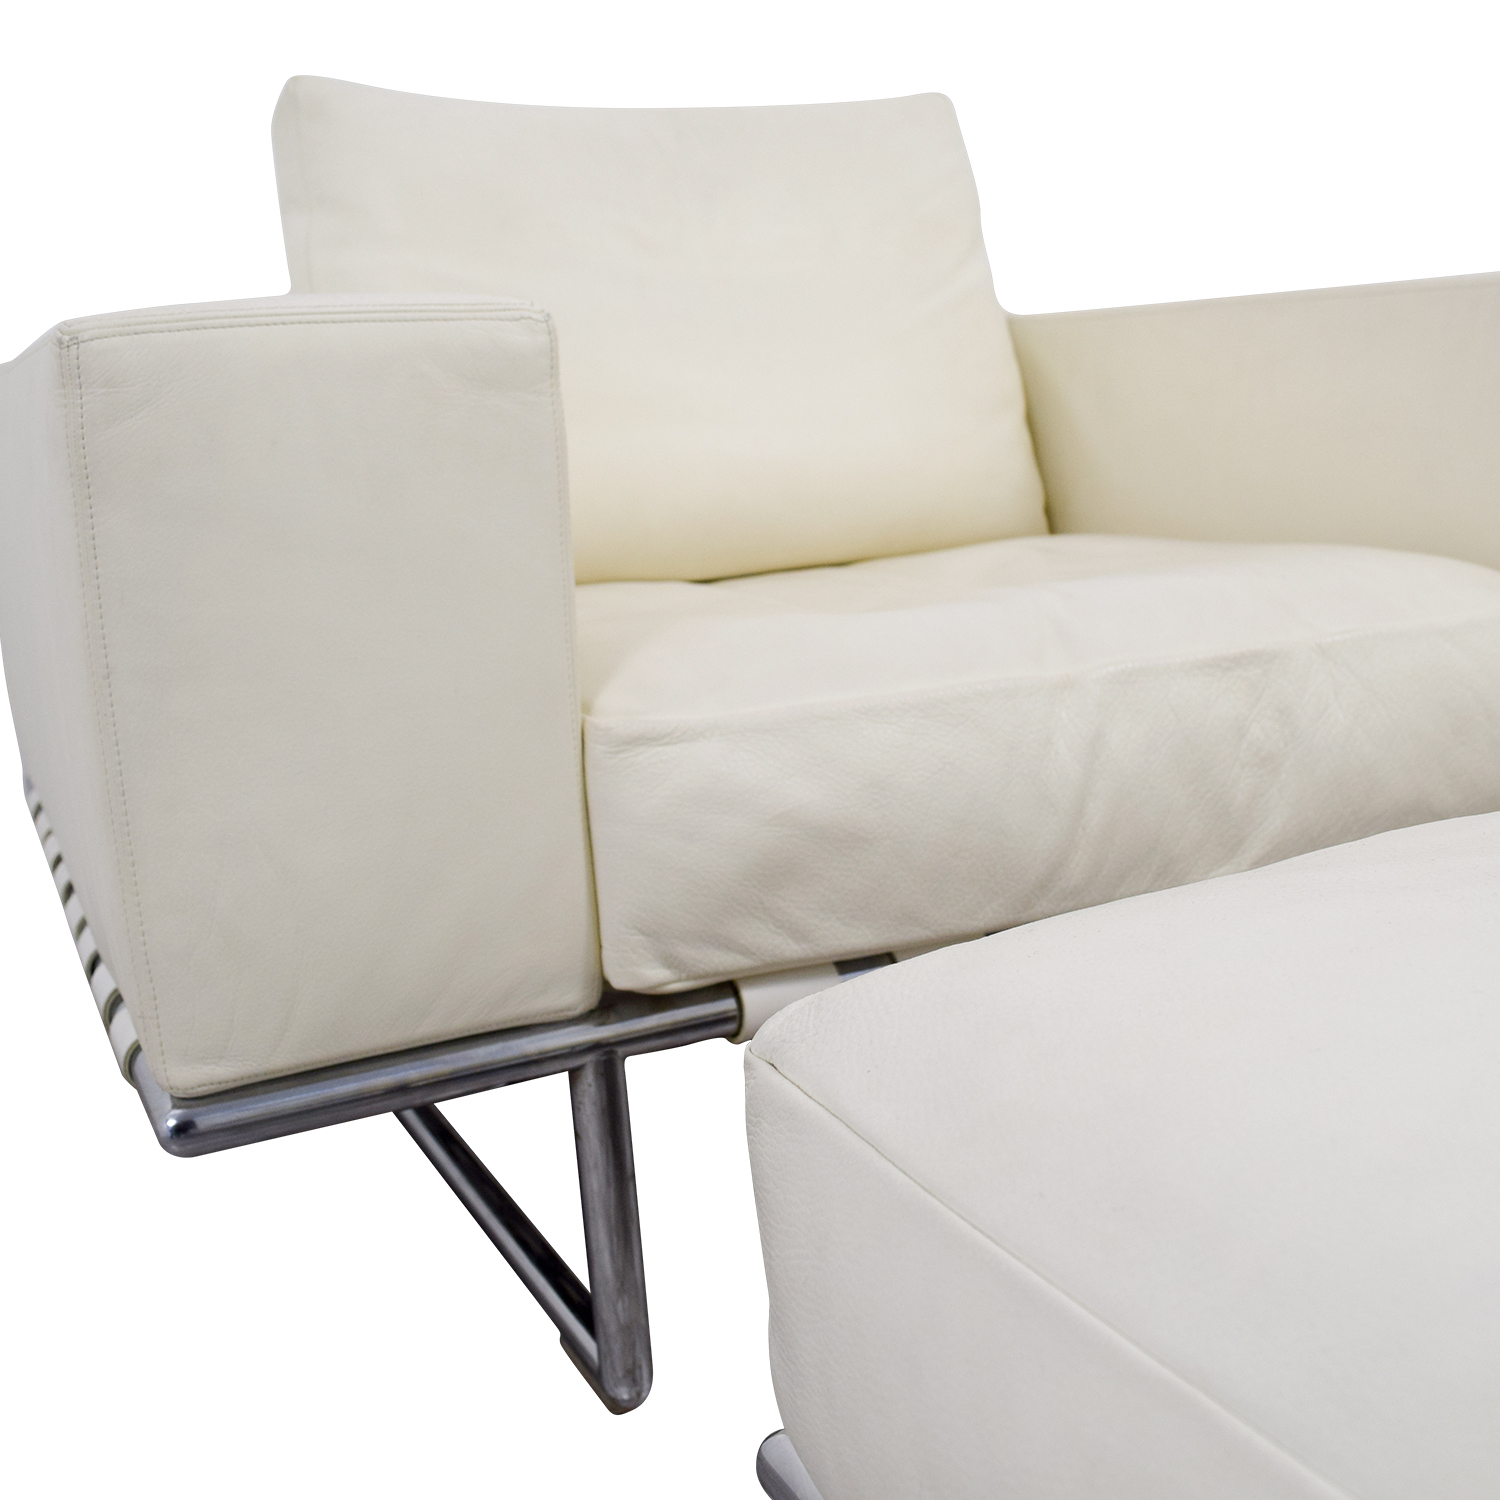 Swell 85 Off Moura Starr Moura Starr Italian White Leather Chair With Ottoman Chairs Dailytribune Chair Design For Home Dailytribuneorg